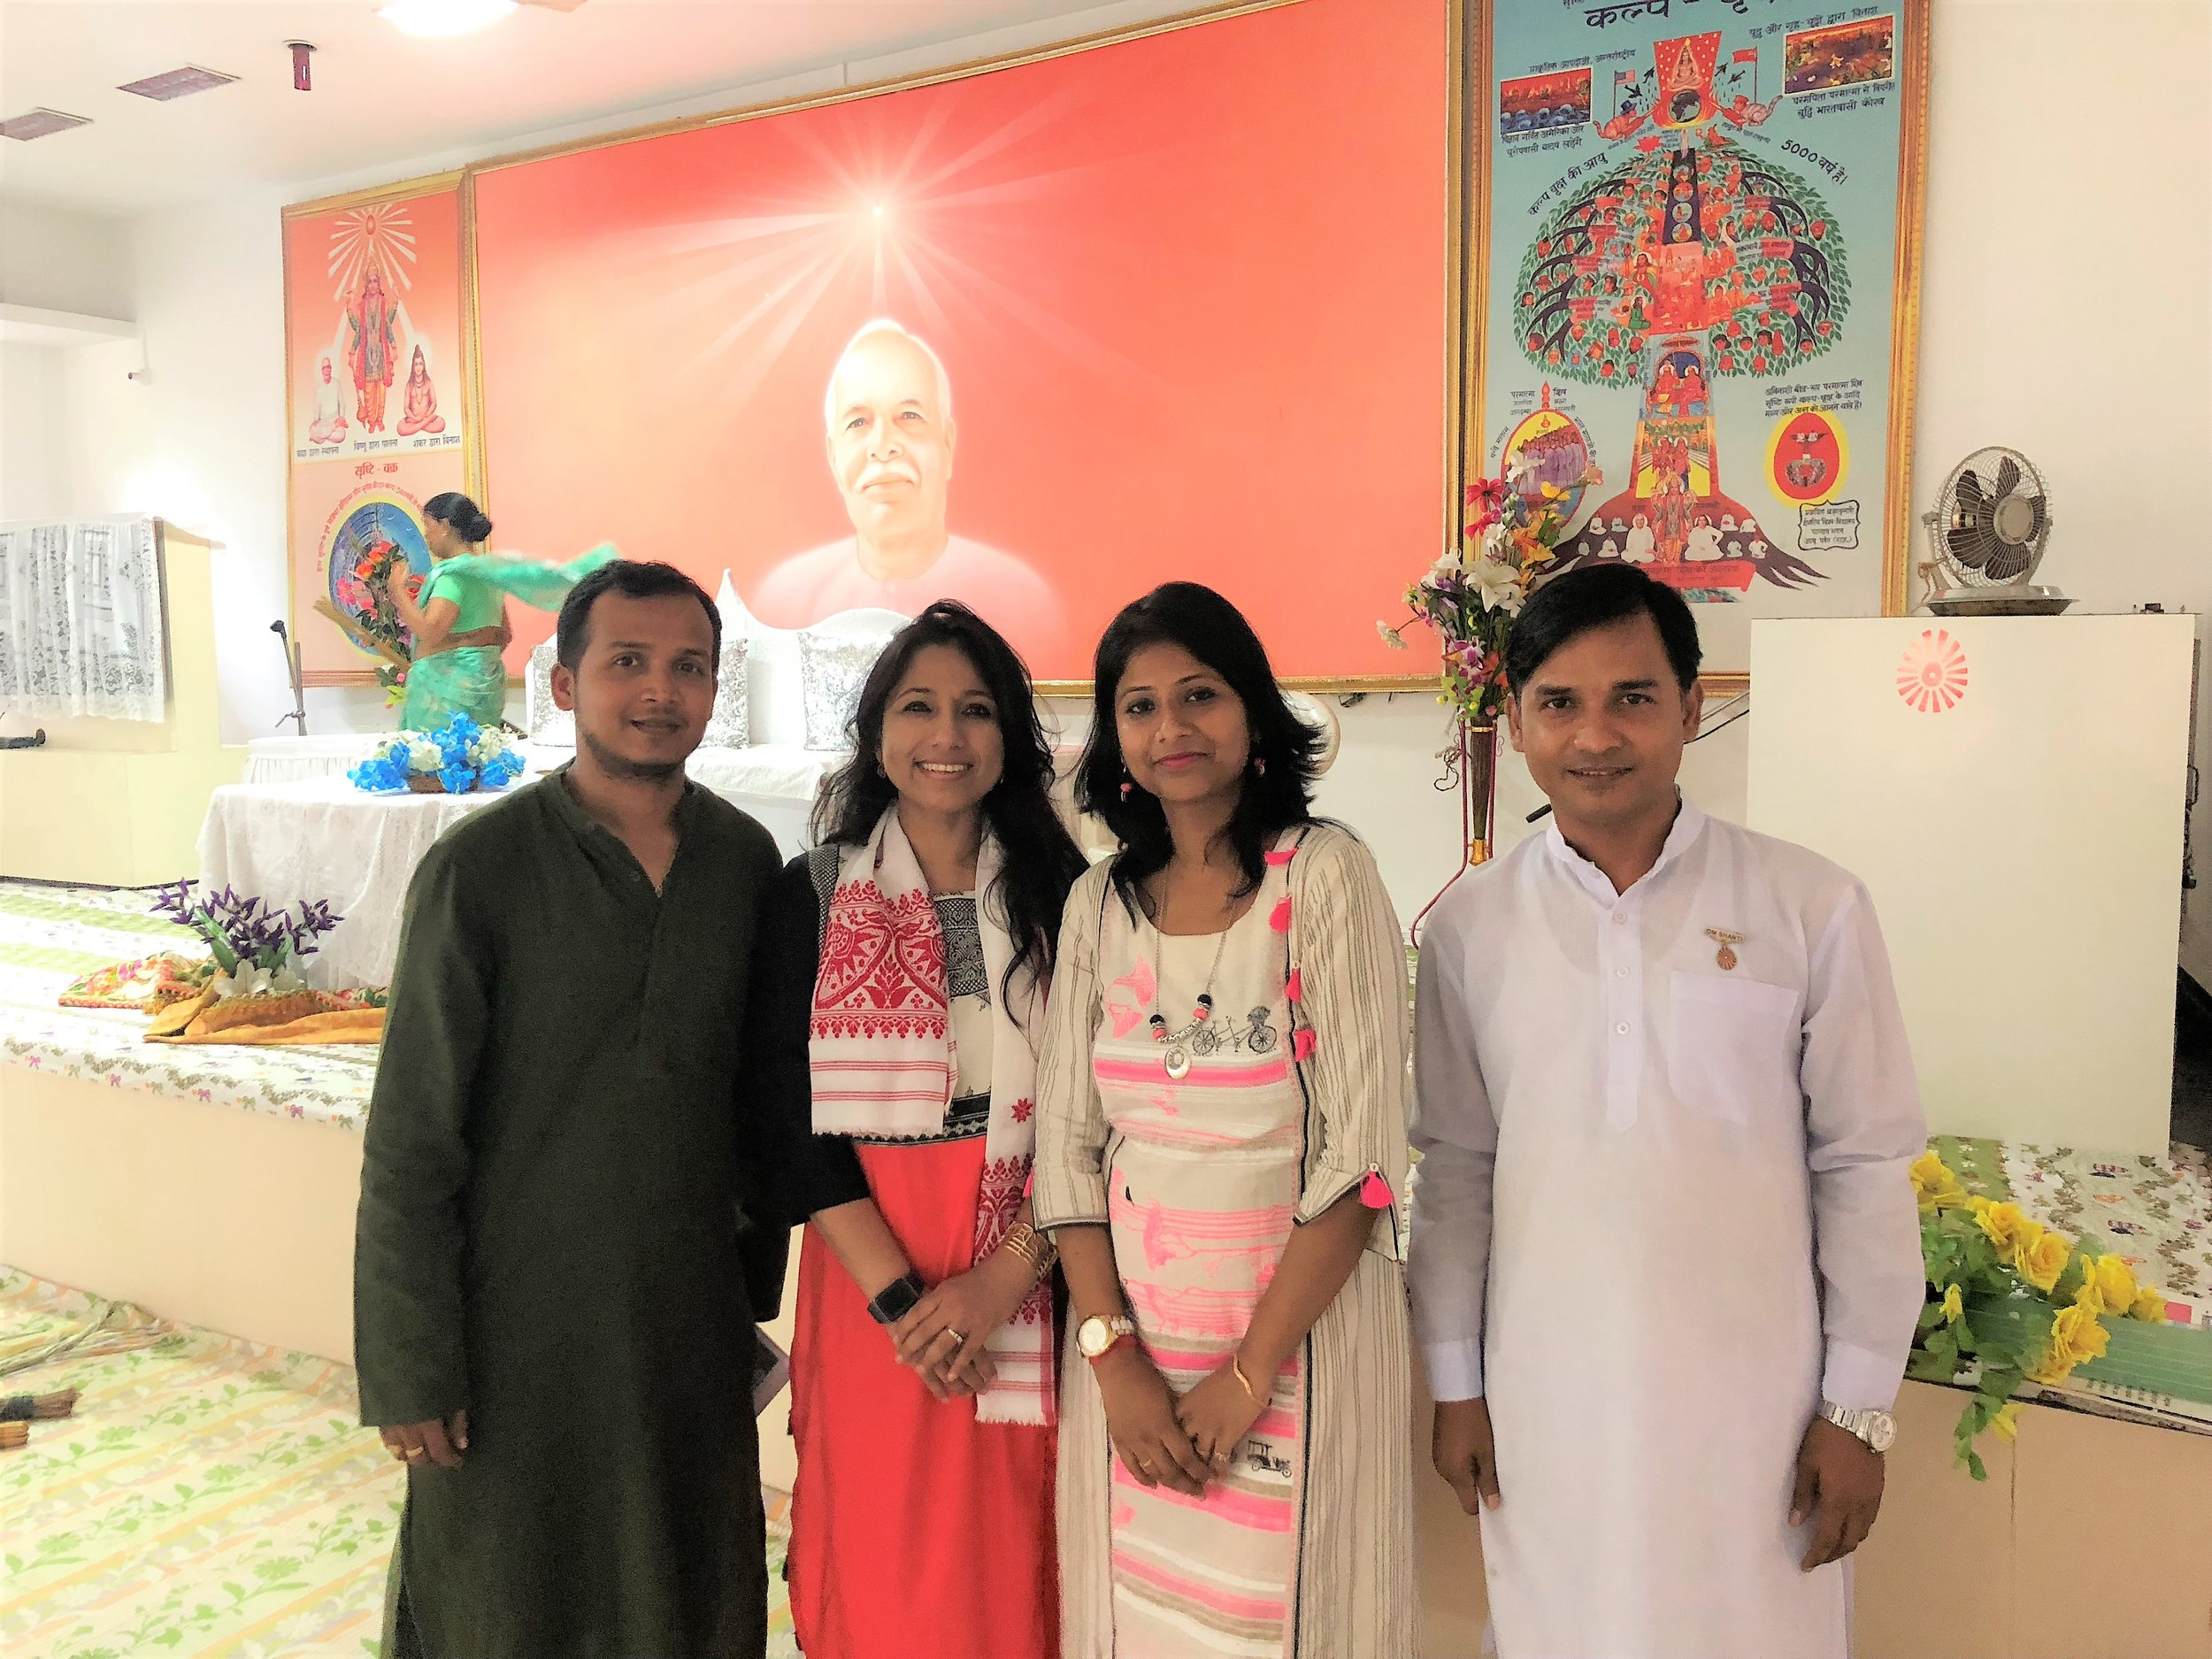 With Dr. Ishita Deb and with the co-founders of Bodhana Mr. Shantanu Paul, Mr. Sandip NathWith Dr. Ishita Deb and with the co-founders of Bodhana Mr. Shantanu Paul, Mr. Sandip Nath